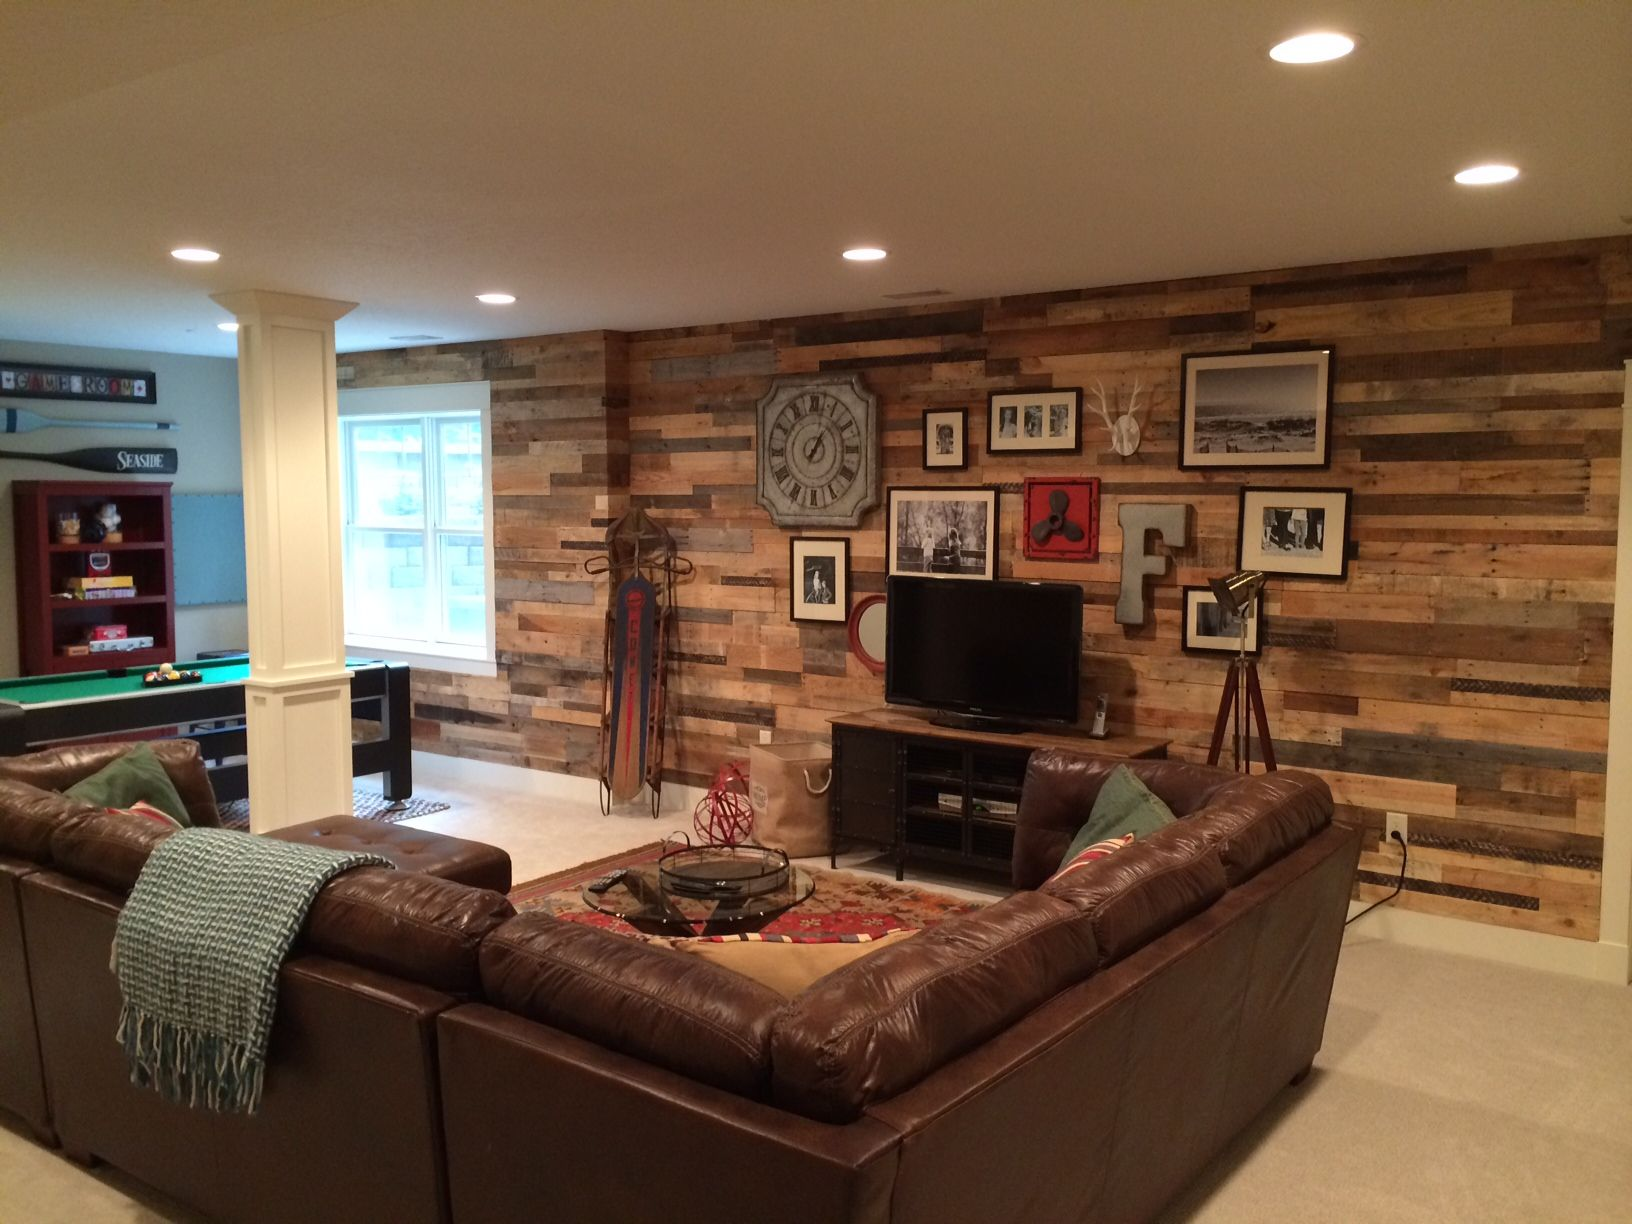 Recycled Pallet Wood Accent Wall | Wood walls, Walls and Woods